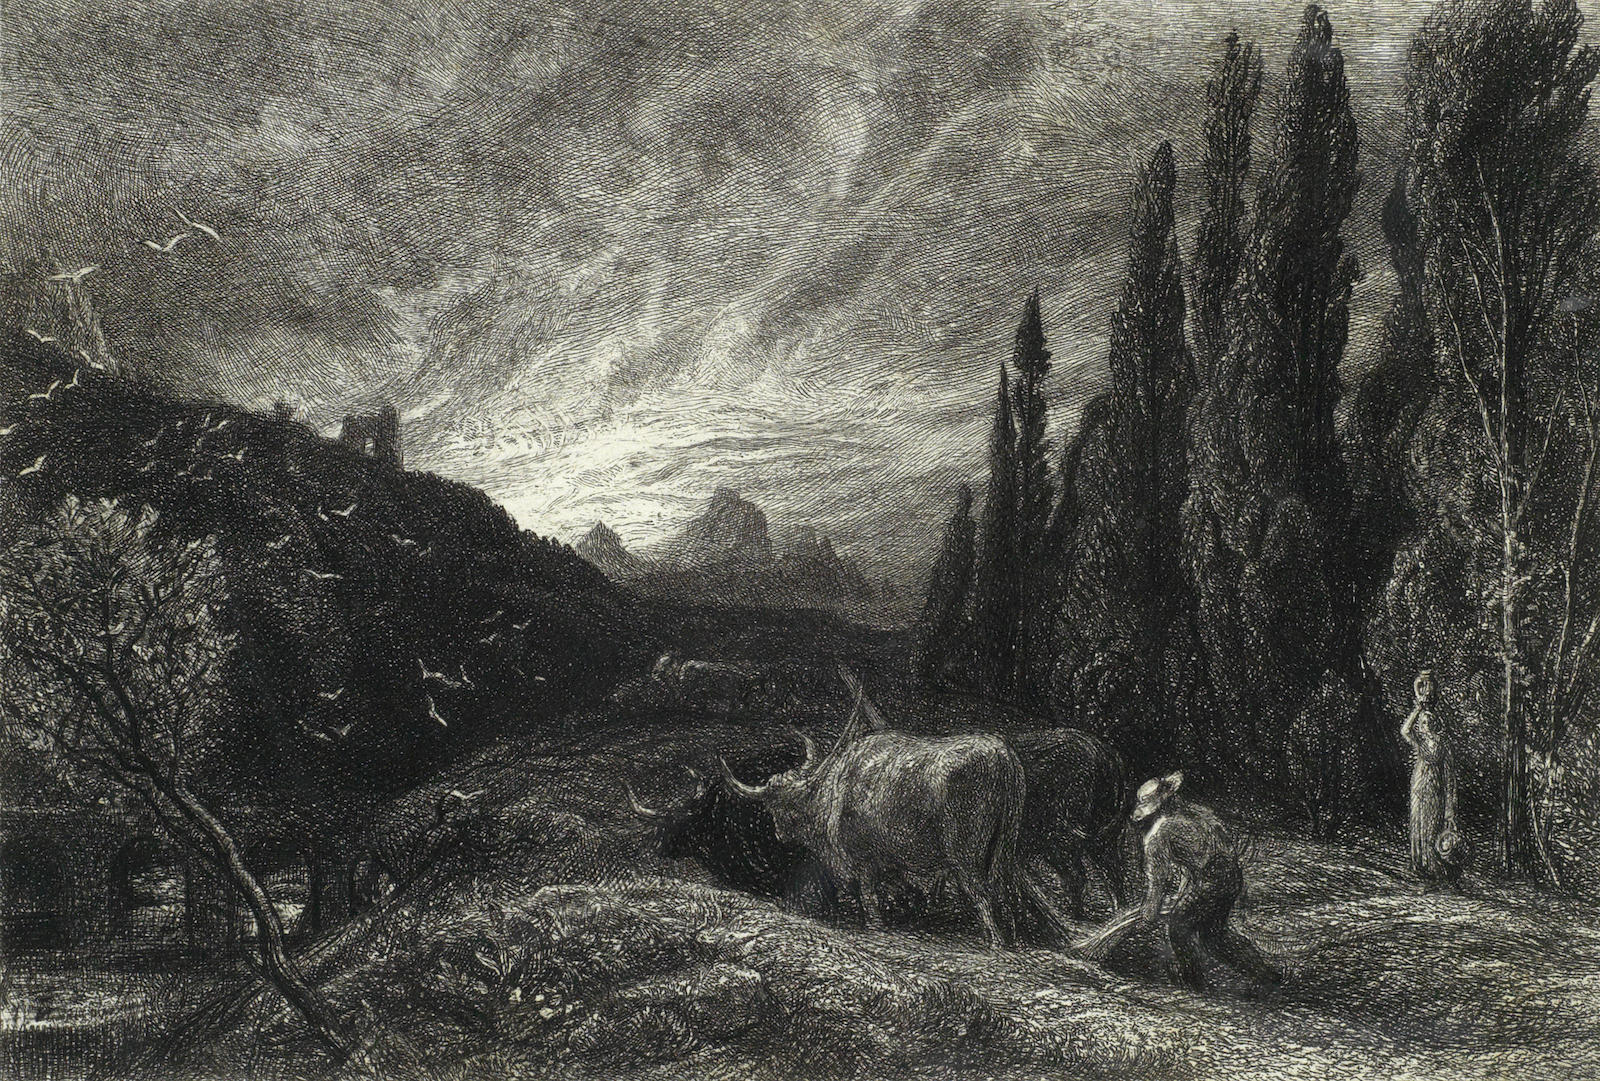 Samuel Palmer-Collection of Four Etchings (The Herdsman's Cottage, The Early Ploughman)-1861